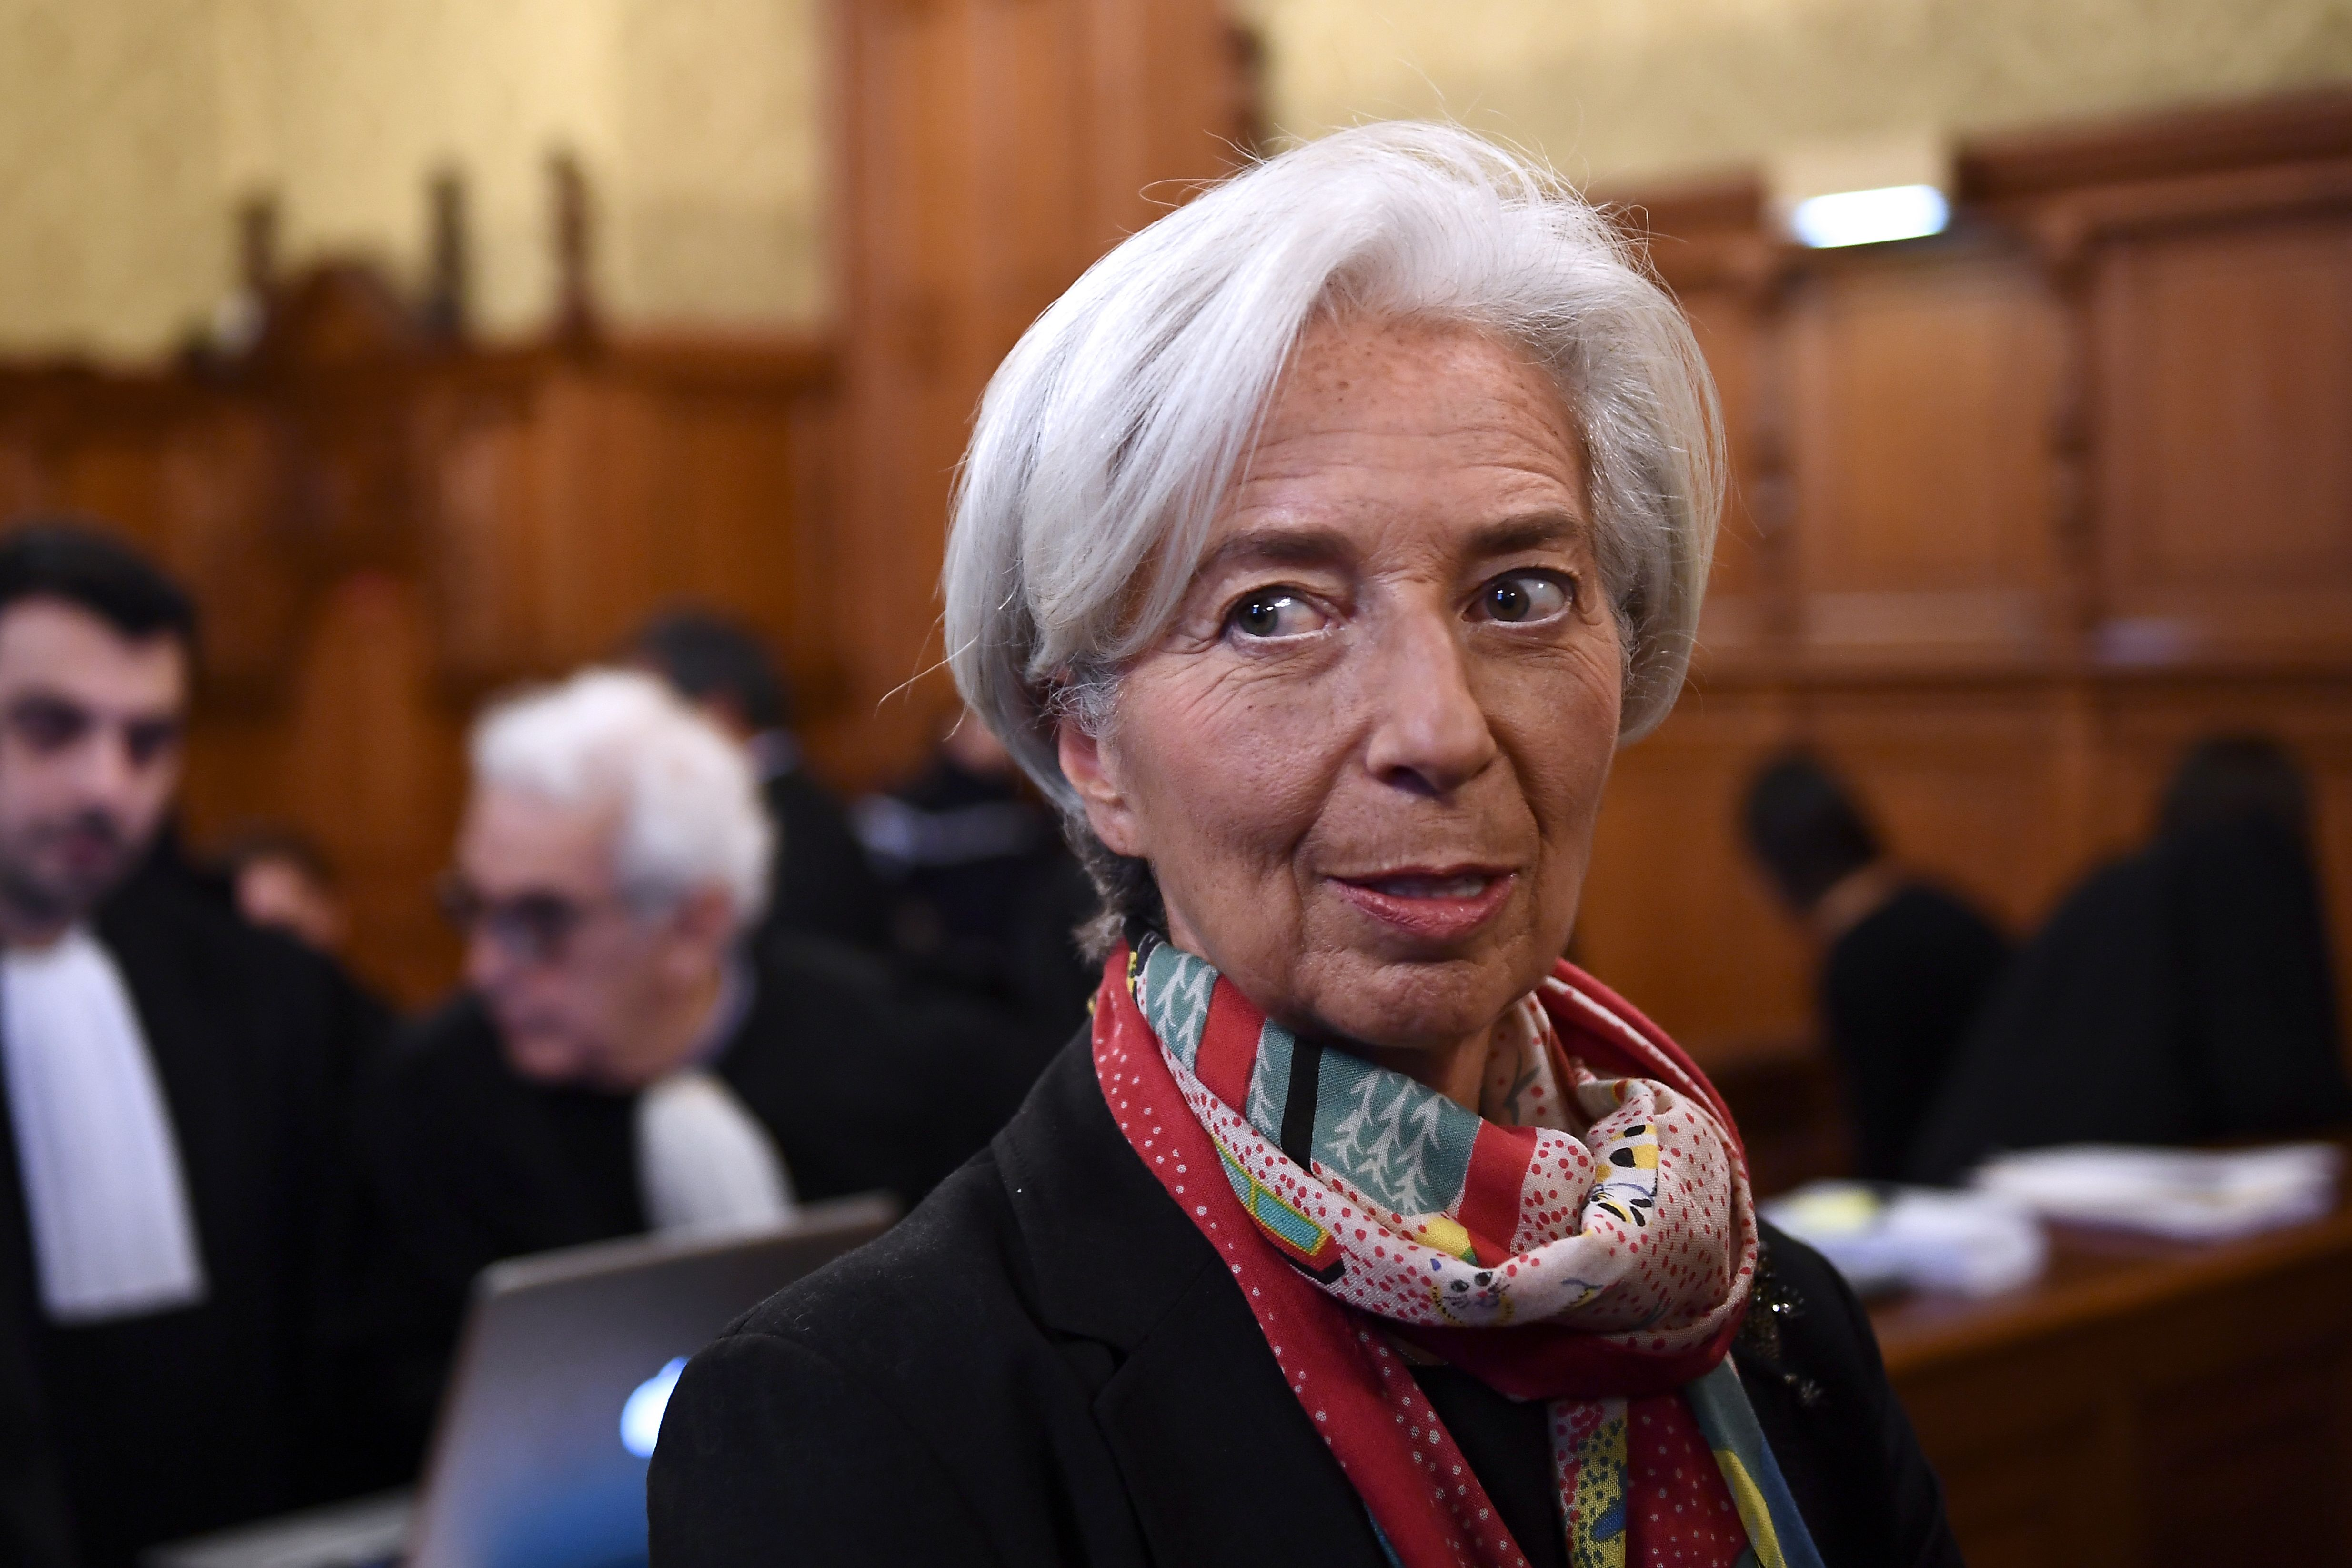 IMF chief Christine Lagarde waits in a courtroom of the Paris courthouse on Dec. 12, 2016.